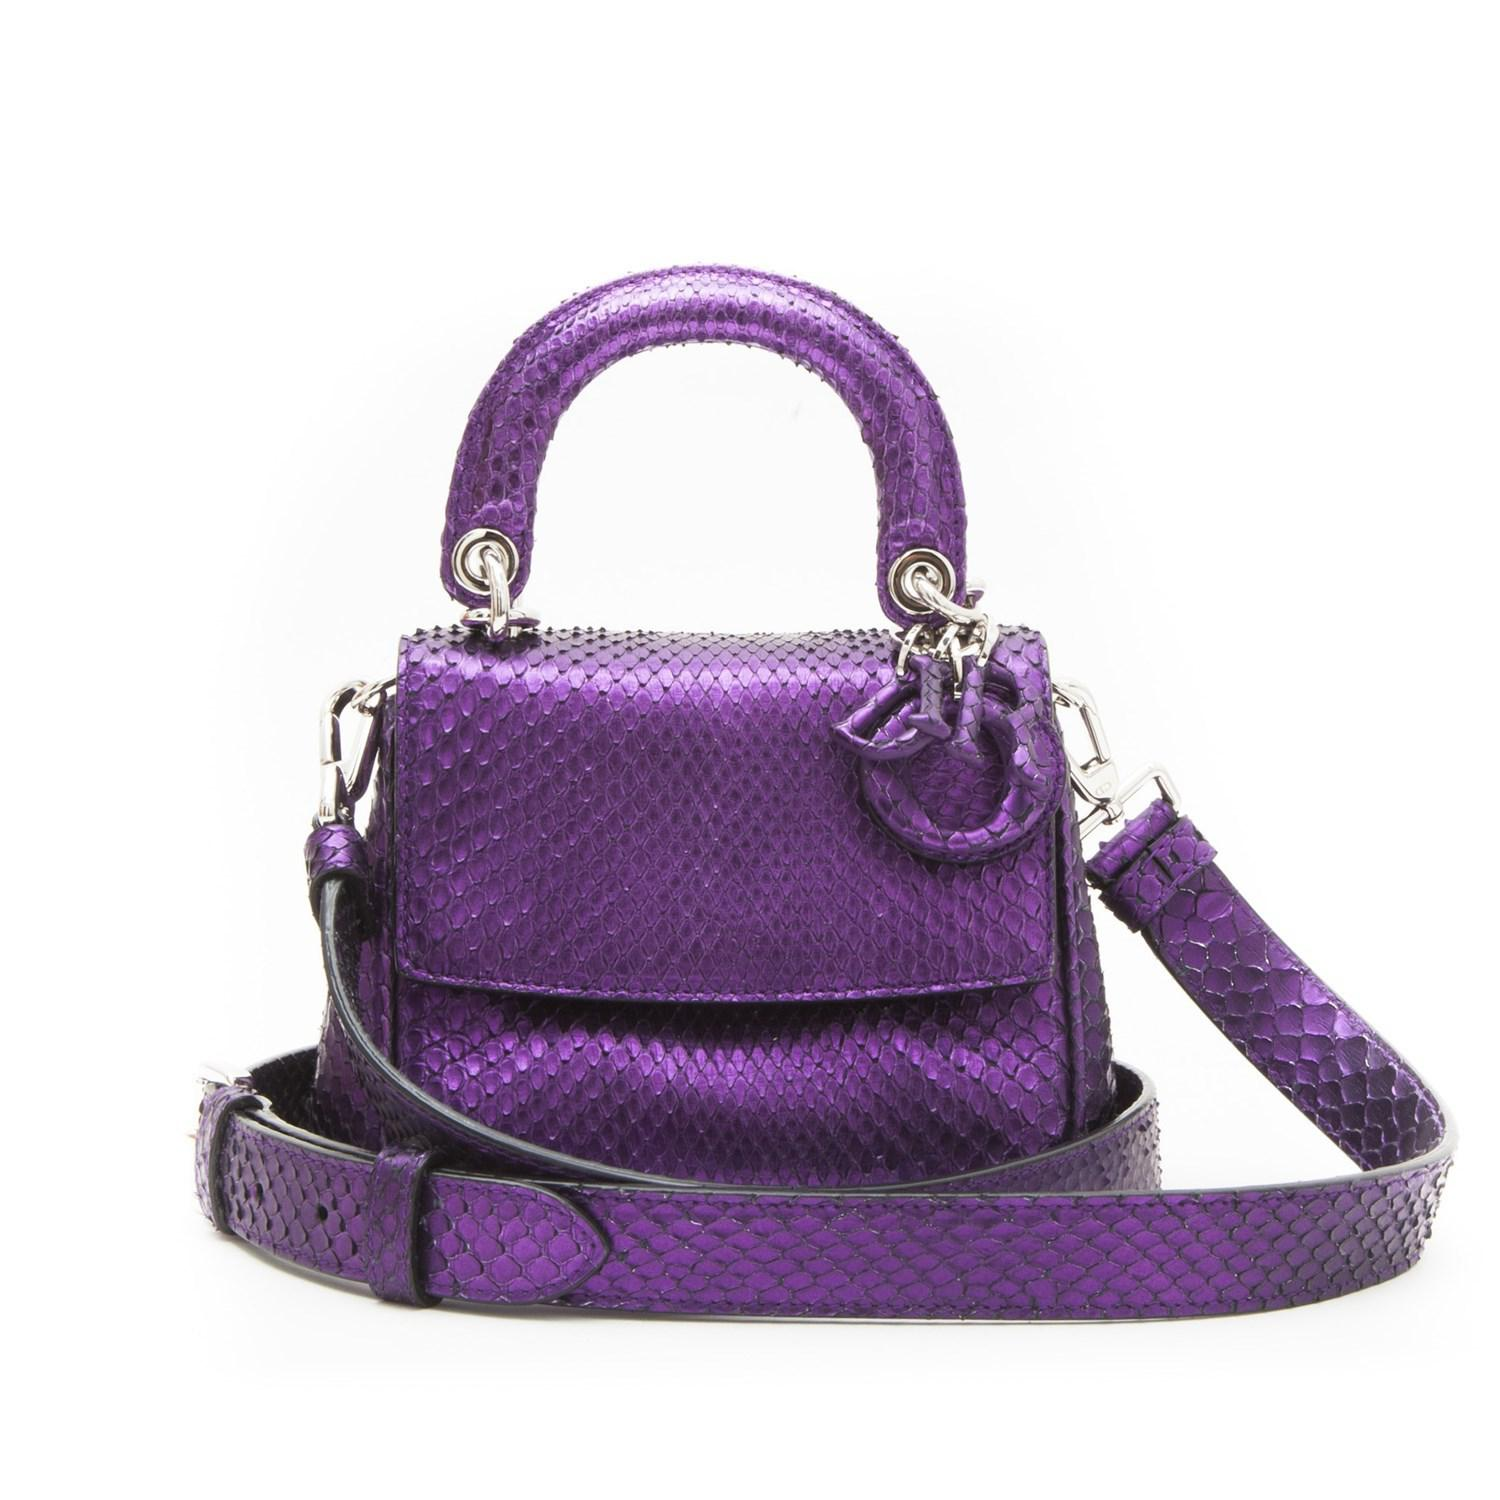 19be8334af5 Lyst - Dior Christian Double Flap Bag In Metallic Purple Python ...